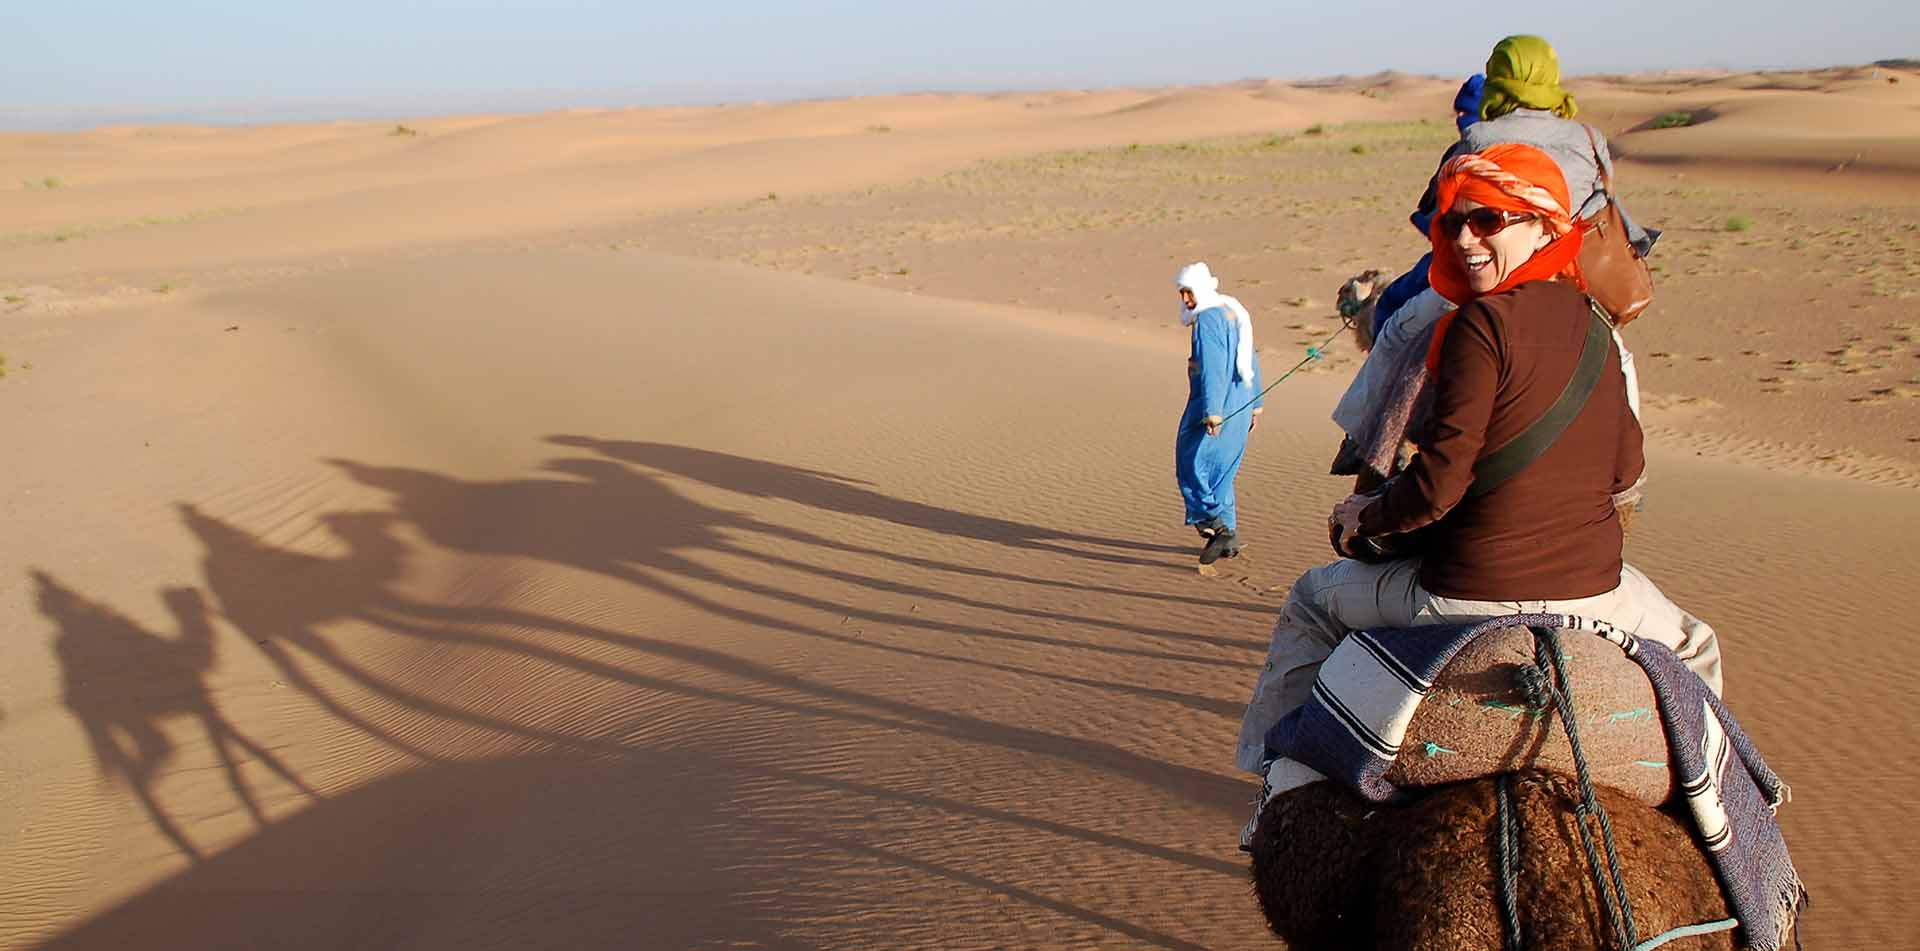 Classic Journeys Founder Susan Piegza on Camel in Sand Dunes of Morocco